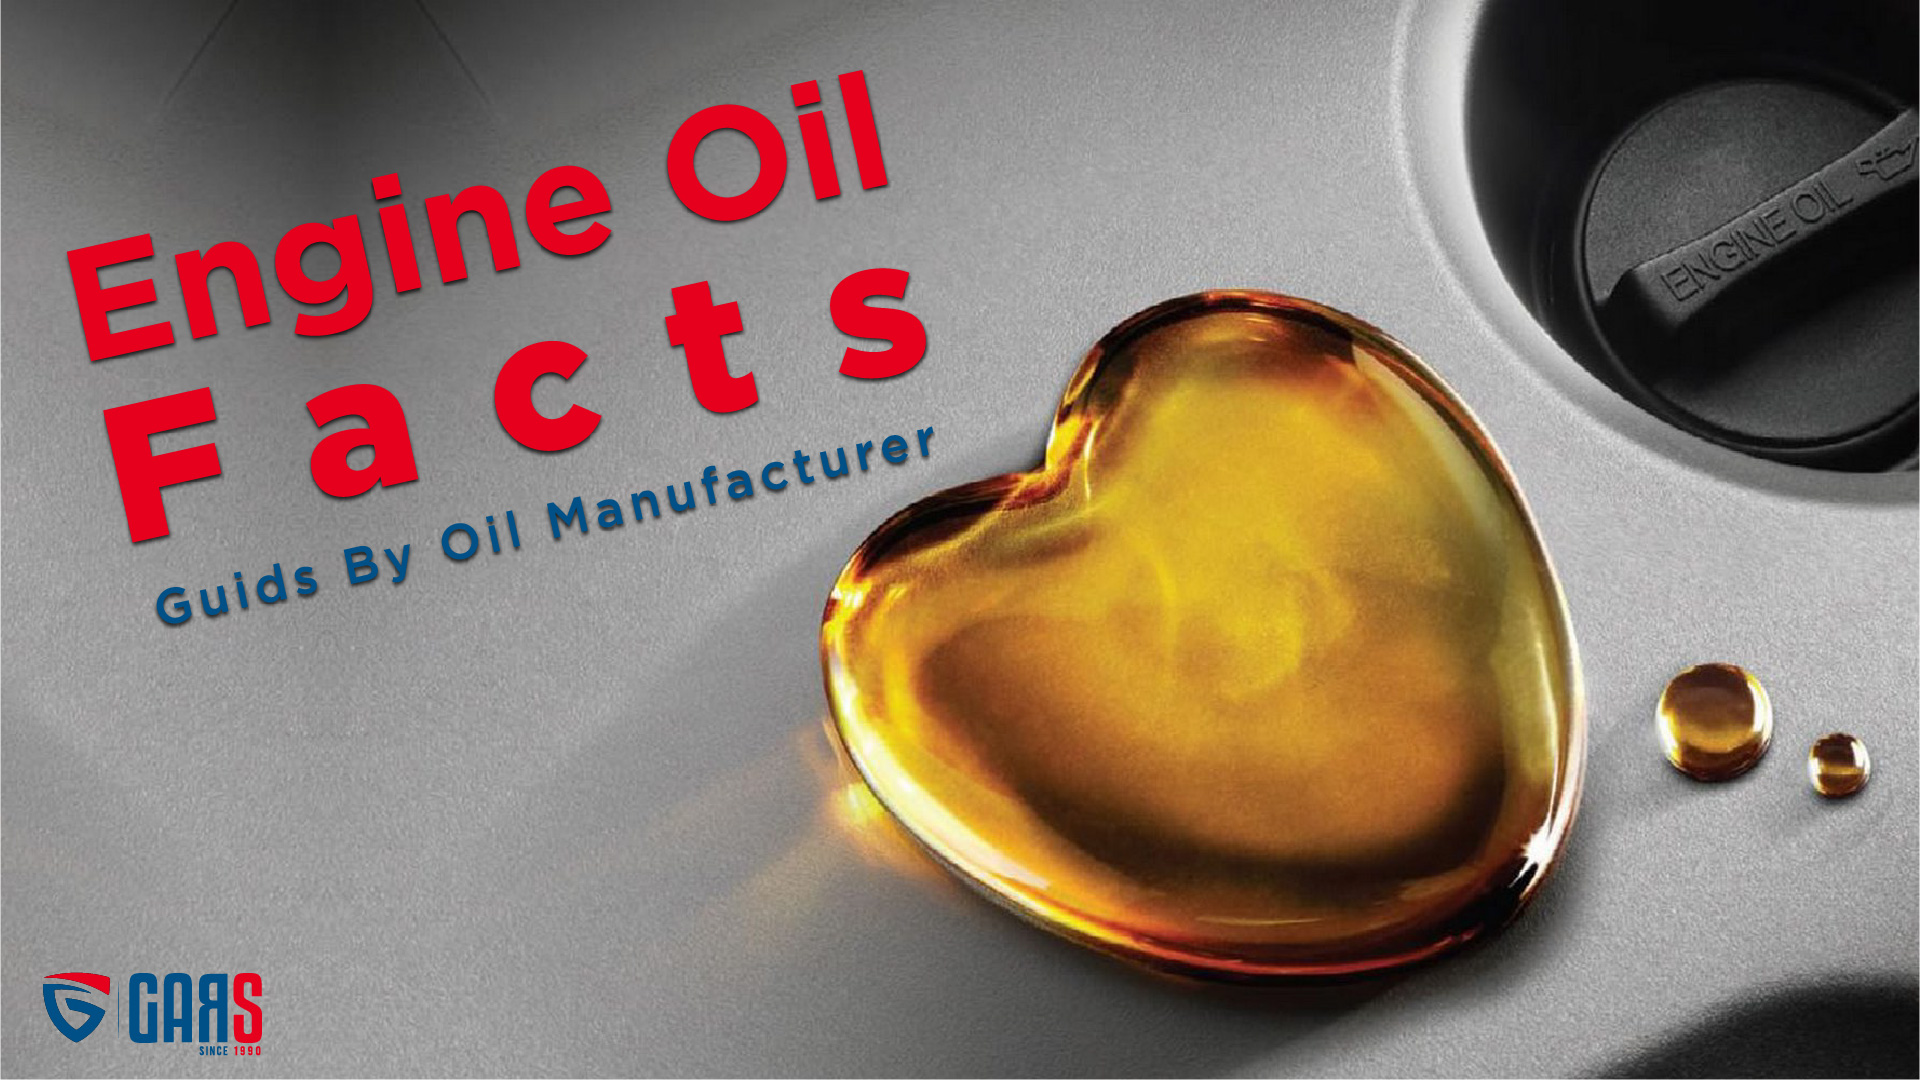 All Facts About Engine Oil